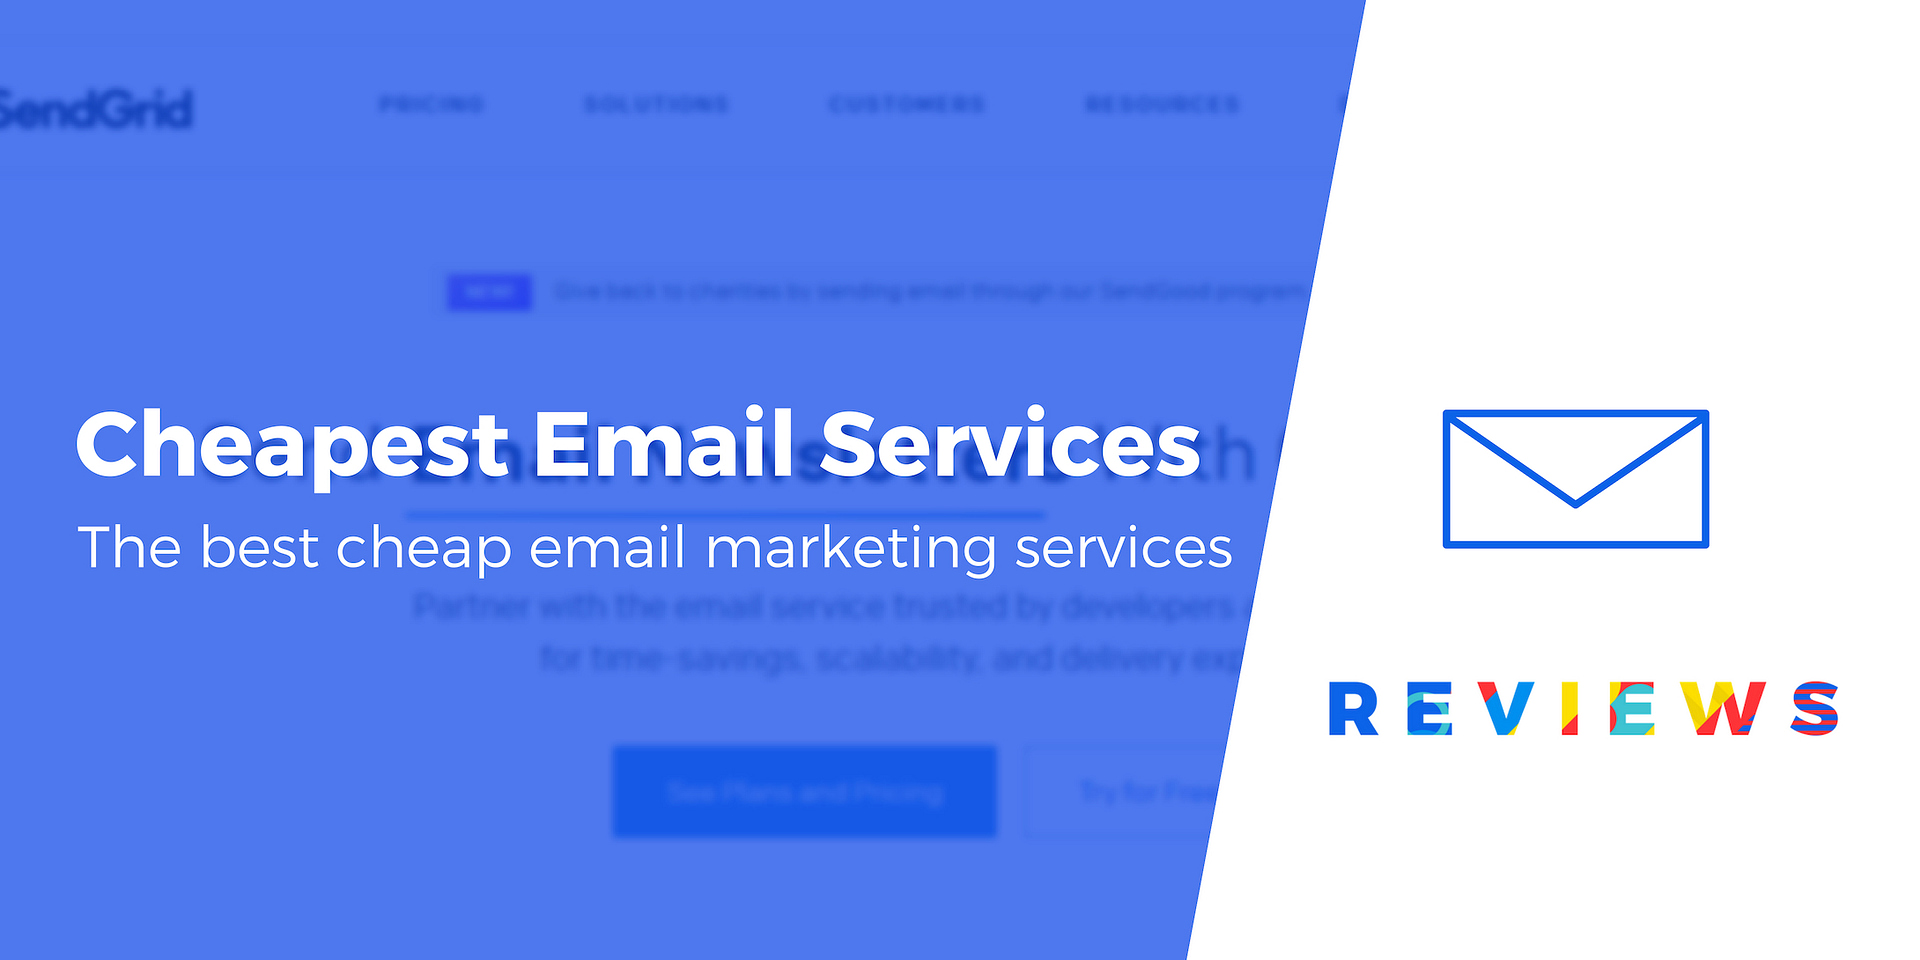 5 Best Cheap Email Marketing Tools Services May 2020